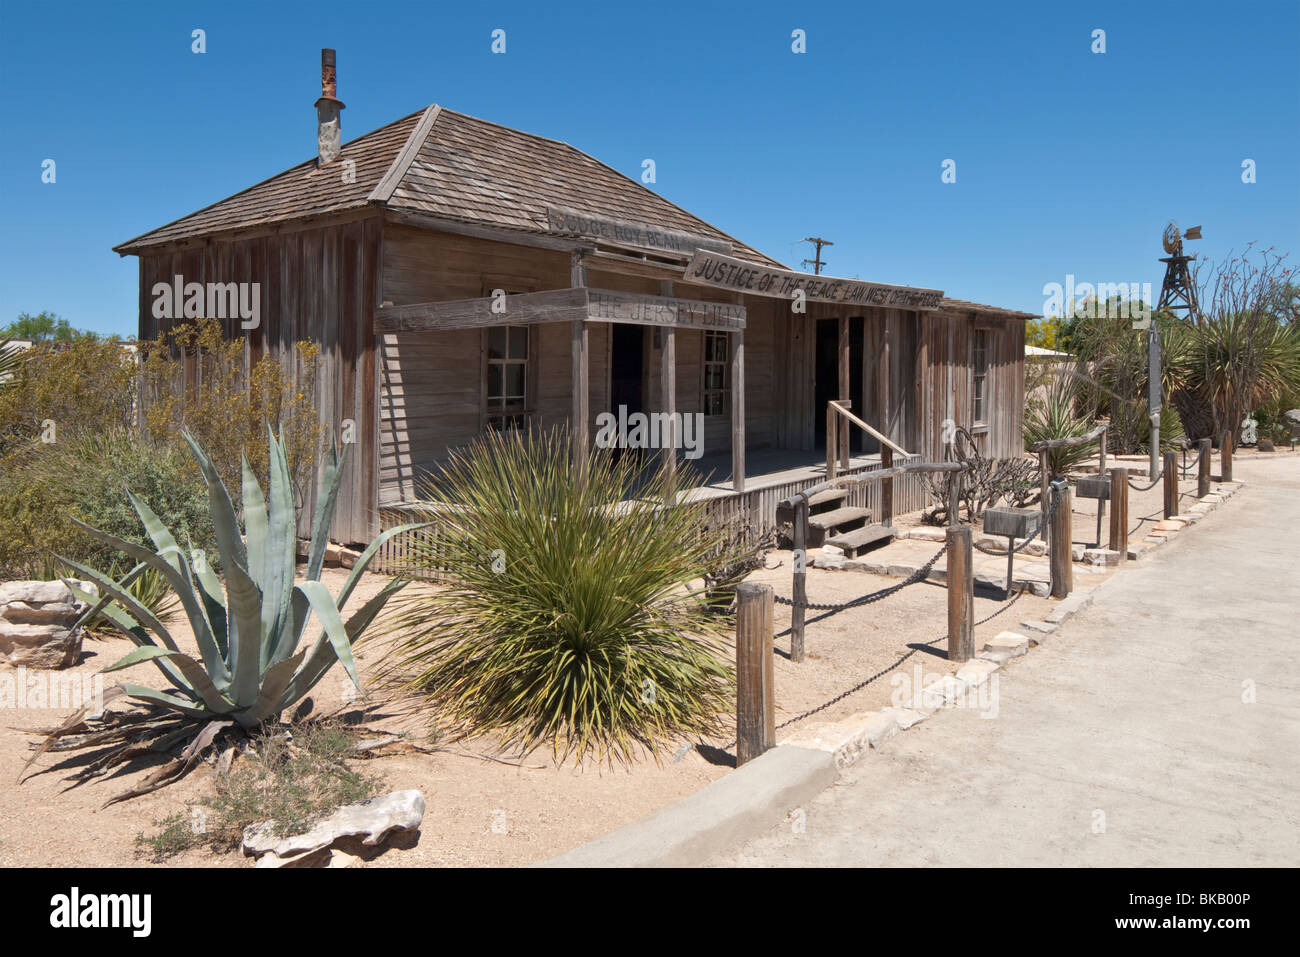 Texas Langtry Judge Roy Bean Visitor Center The Jersey Lilly Saloon Original